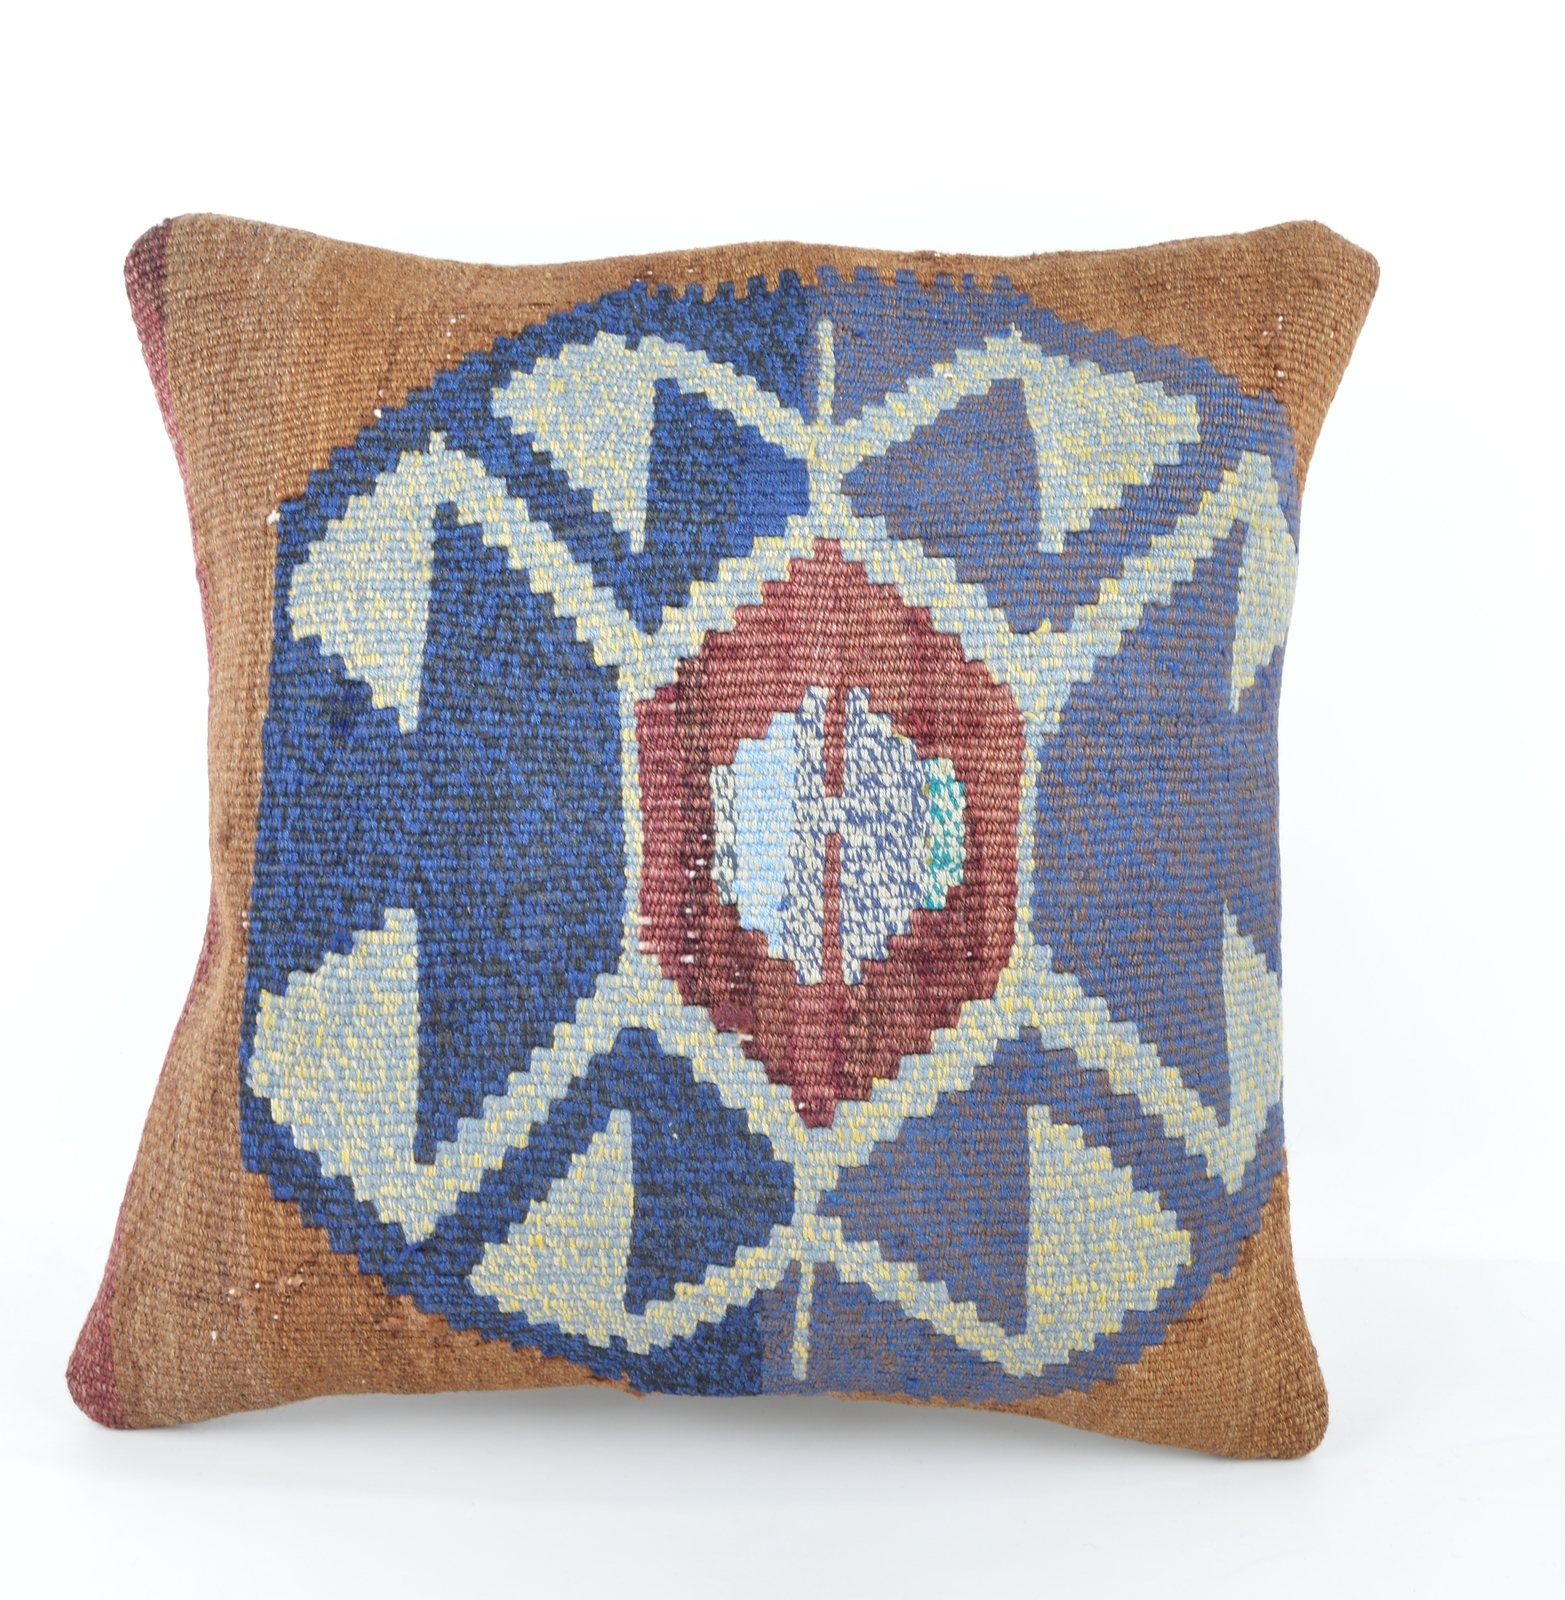 Decorative Pillows Kilim : kilim,throw pillow kilim,bohemian and 50 similar items